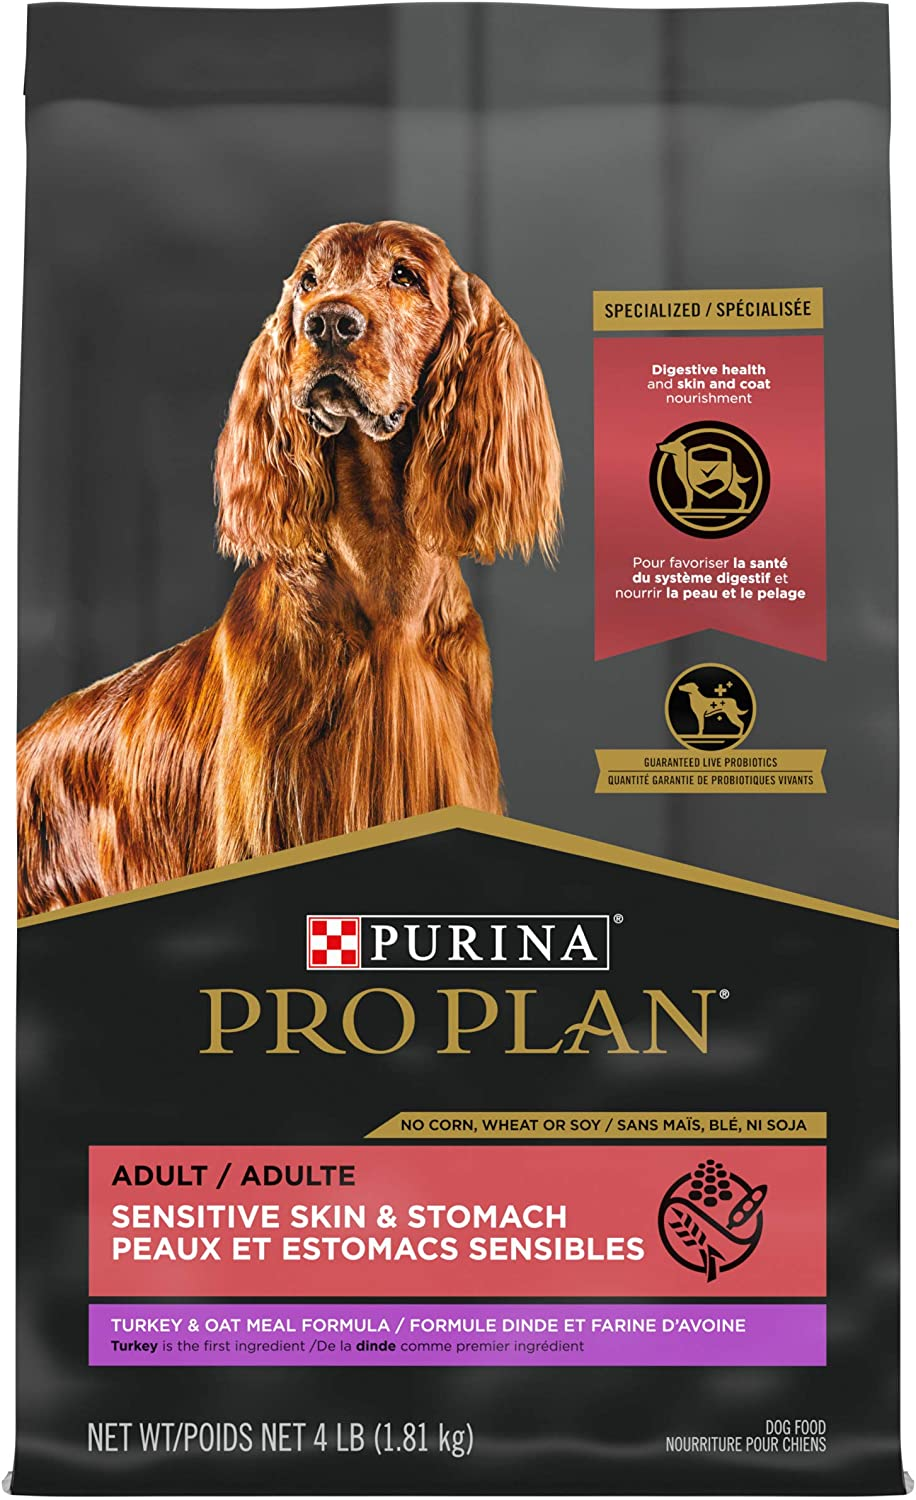 Purina Pro Plan Sensitive Skin and Stomach Dog Food with Probiotics for Dogs, Turkey & Oat Meal Formula - 4 lb. Bag